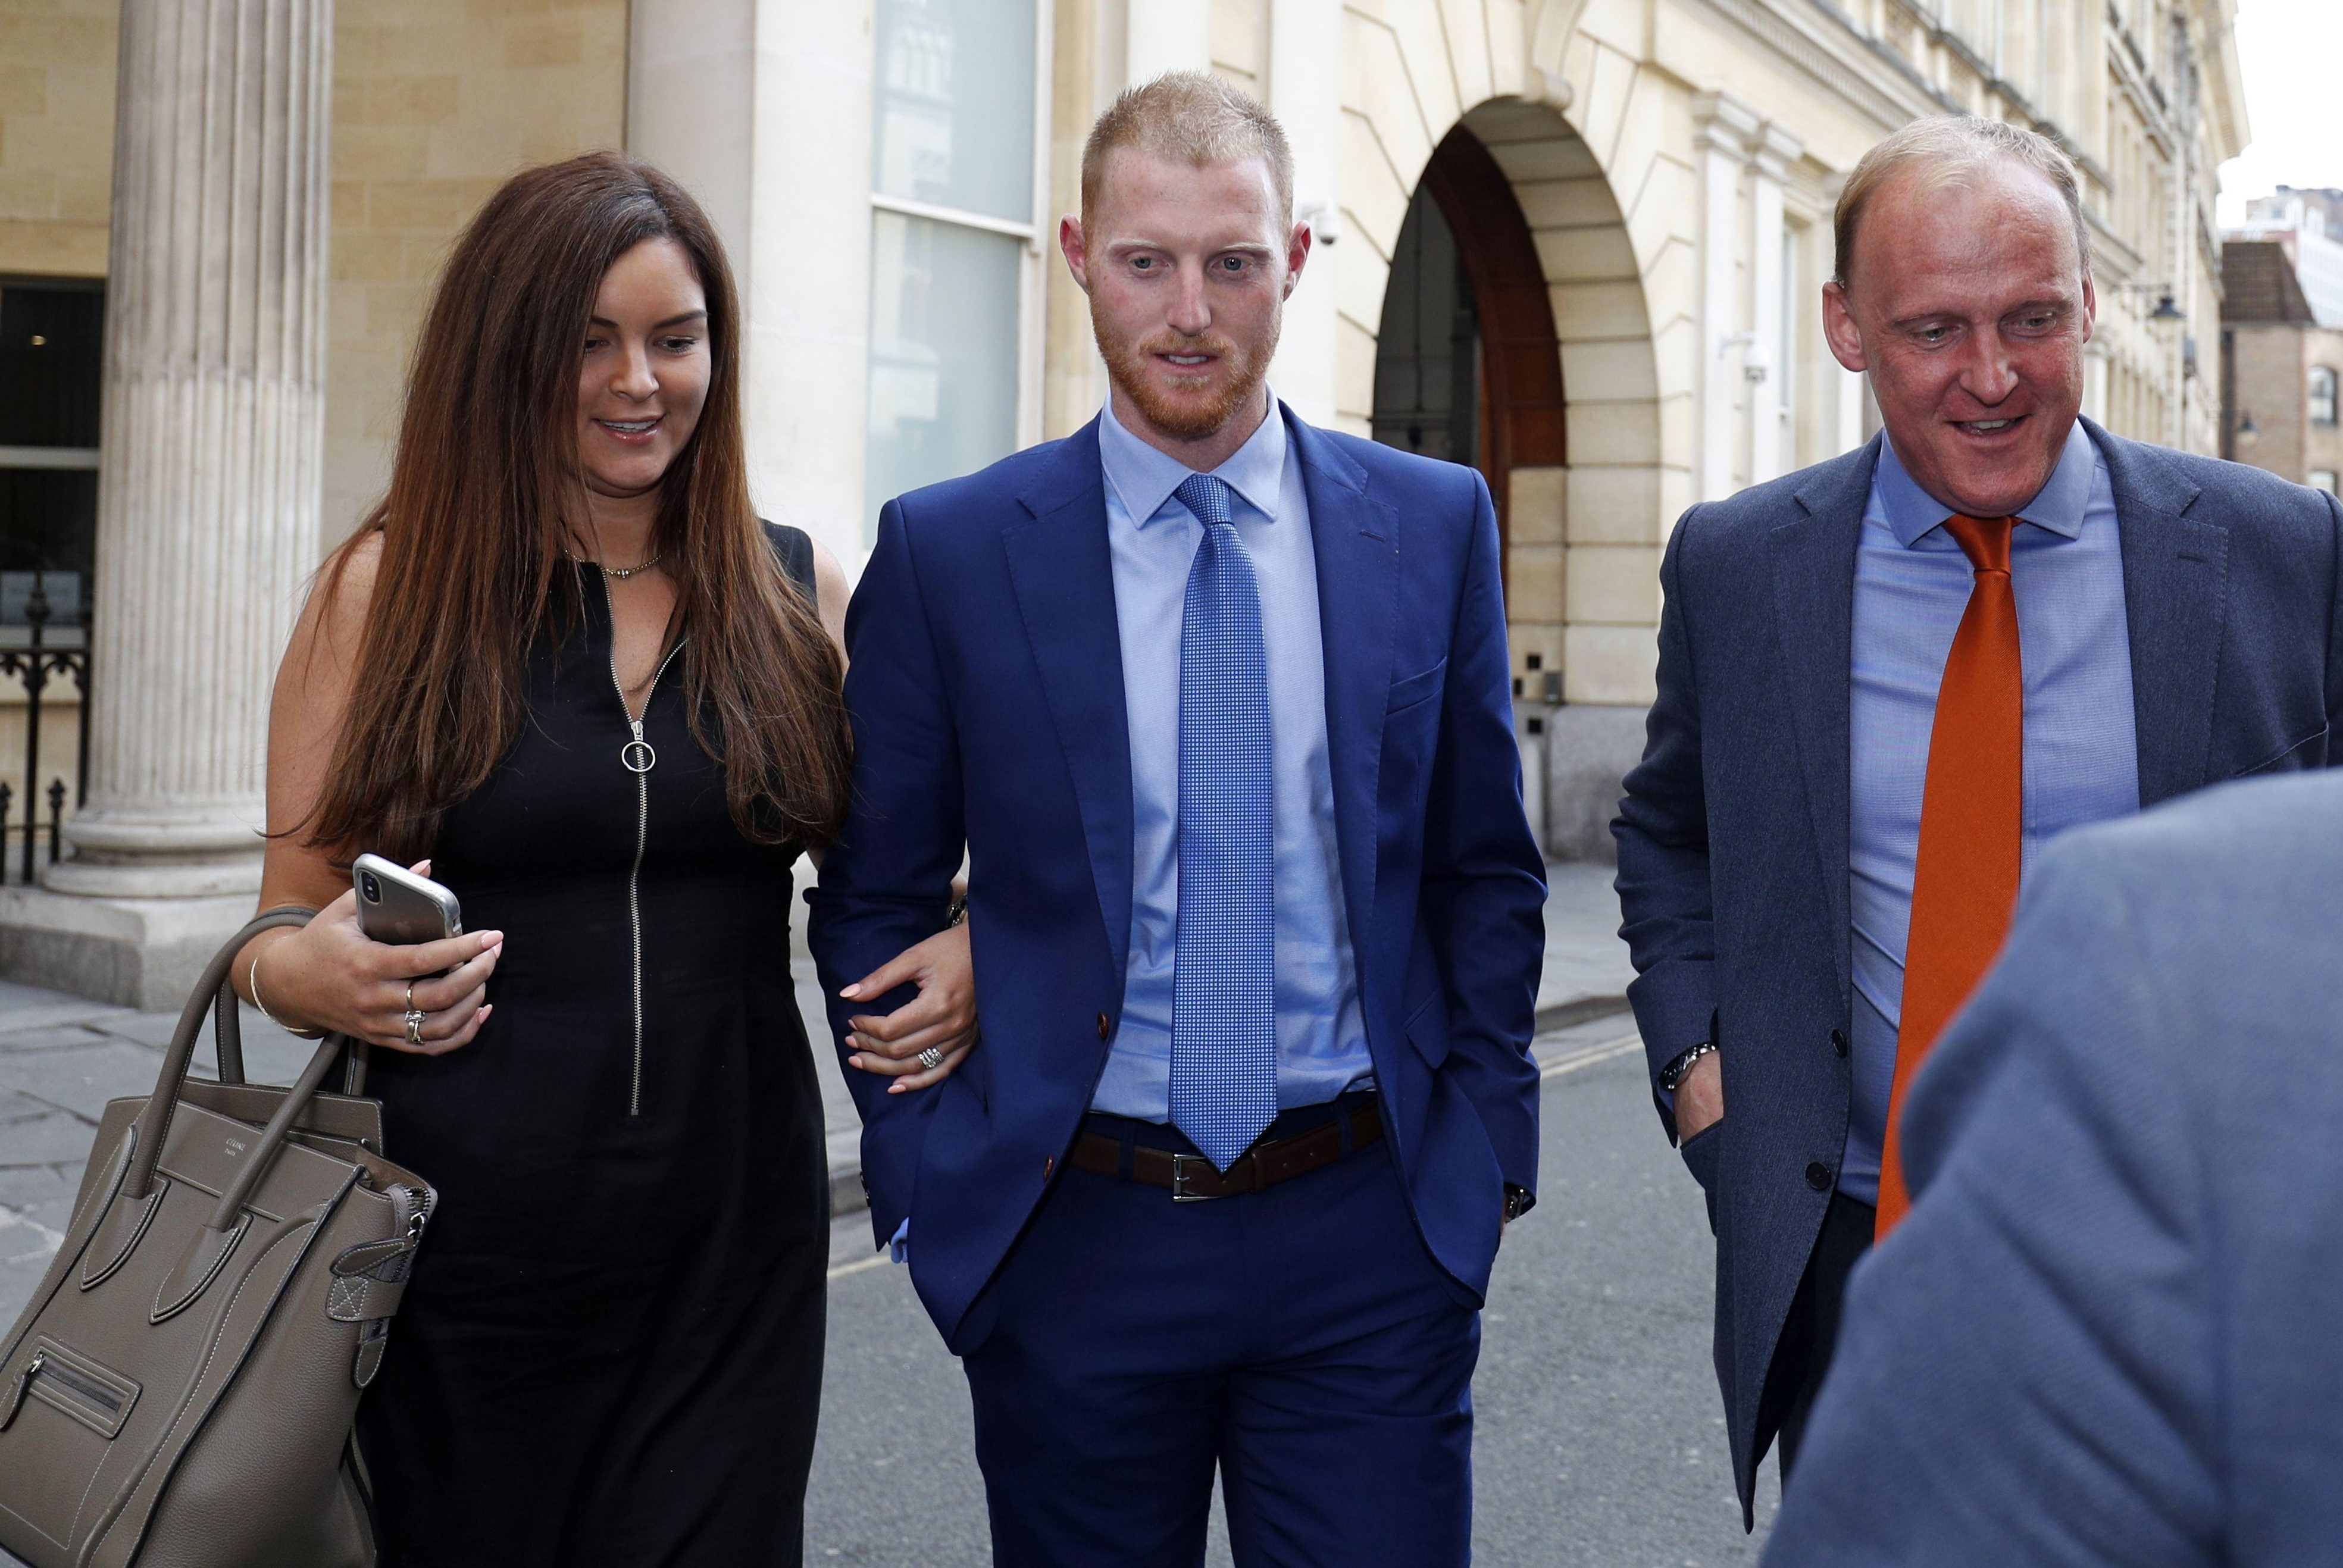 England star Ben Stokes, seen with wife Clare, leaves Bristol Crown Court after his affray case broke for the day